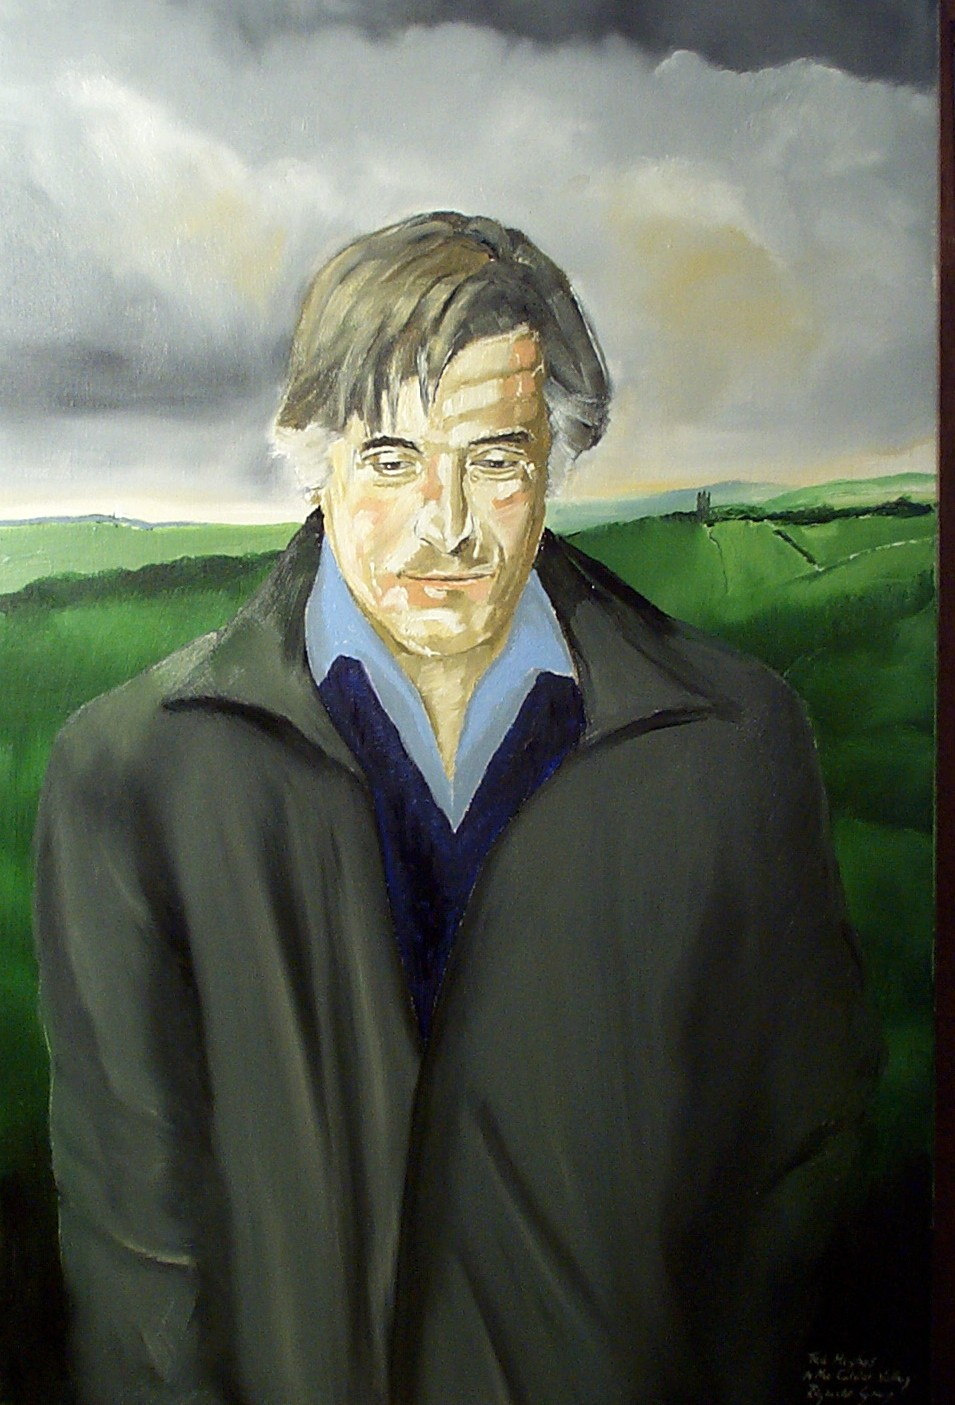 """hawk roosting bearing in mind the stylistic devices used essay Ted hughes b 1930 d 1998 """" poetry is the voice of spirit and imagination and all that is potential, as well as of the healing benevolence that used to be the privilege of the gods."""